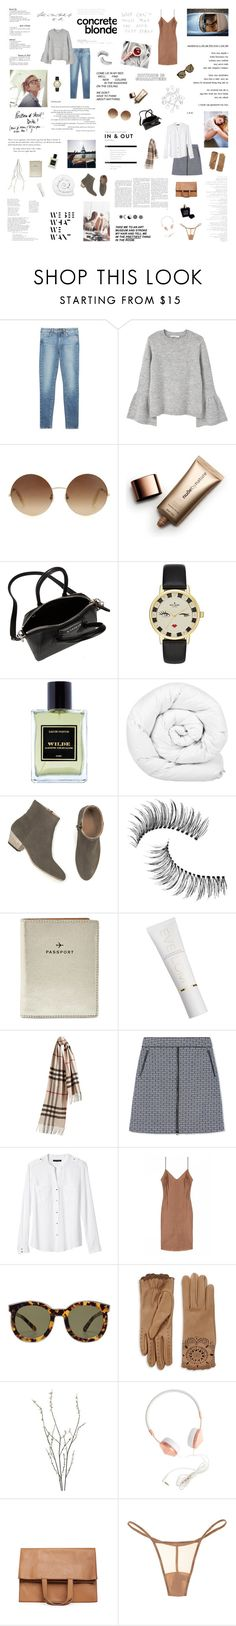 """maybe the best has yet to come"" by curious-and-young ❤ liked on Polyvore featuring Paige Denim, MANGO, Victoria Beckham, Nude by Nature, Givenchy, Sonia Rykiel, Kate Spade, Jardins D'Écrivains, Brinkhaus and Common Projects"